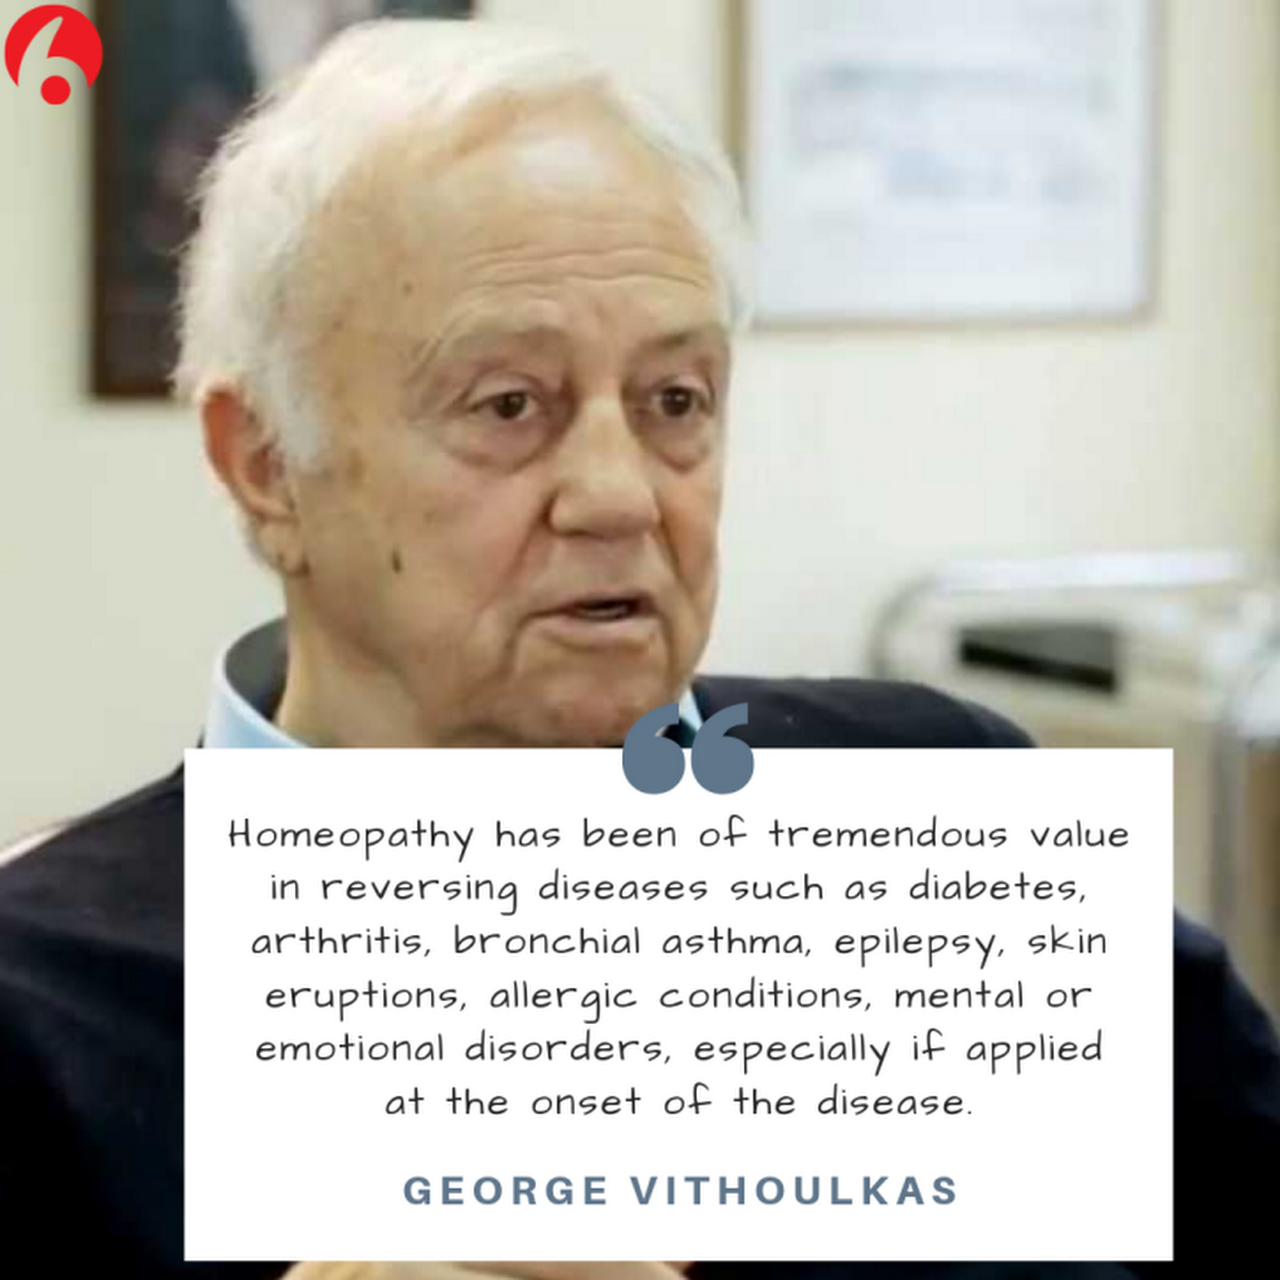 German Homoeo Clinic, Best Homeopathic Doctor   Top Homeopathy